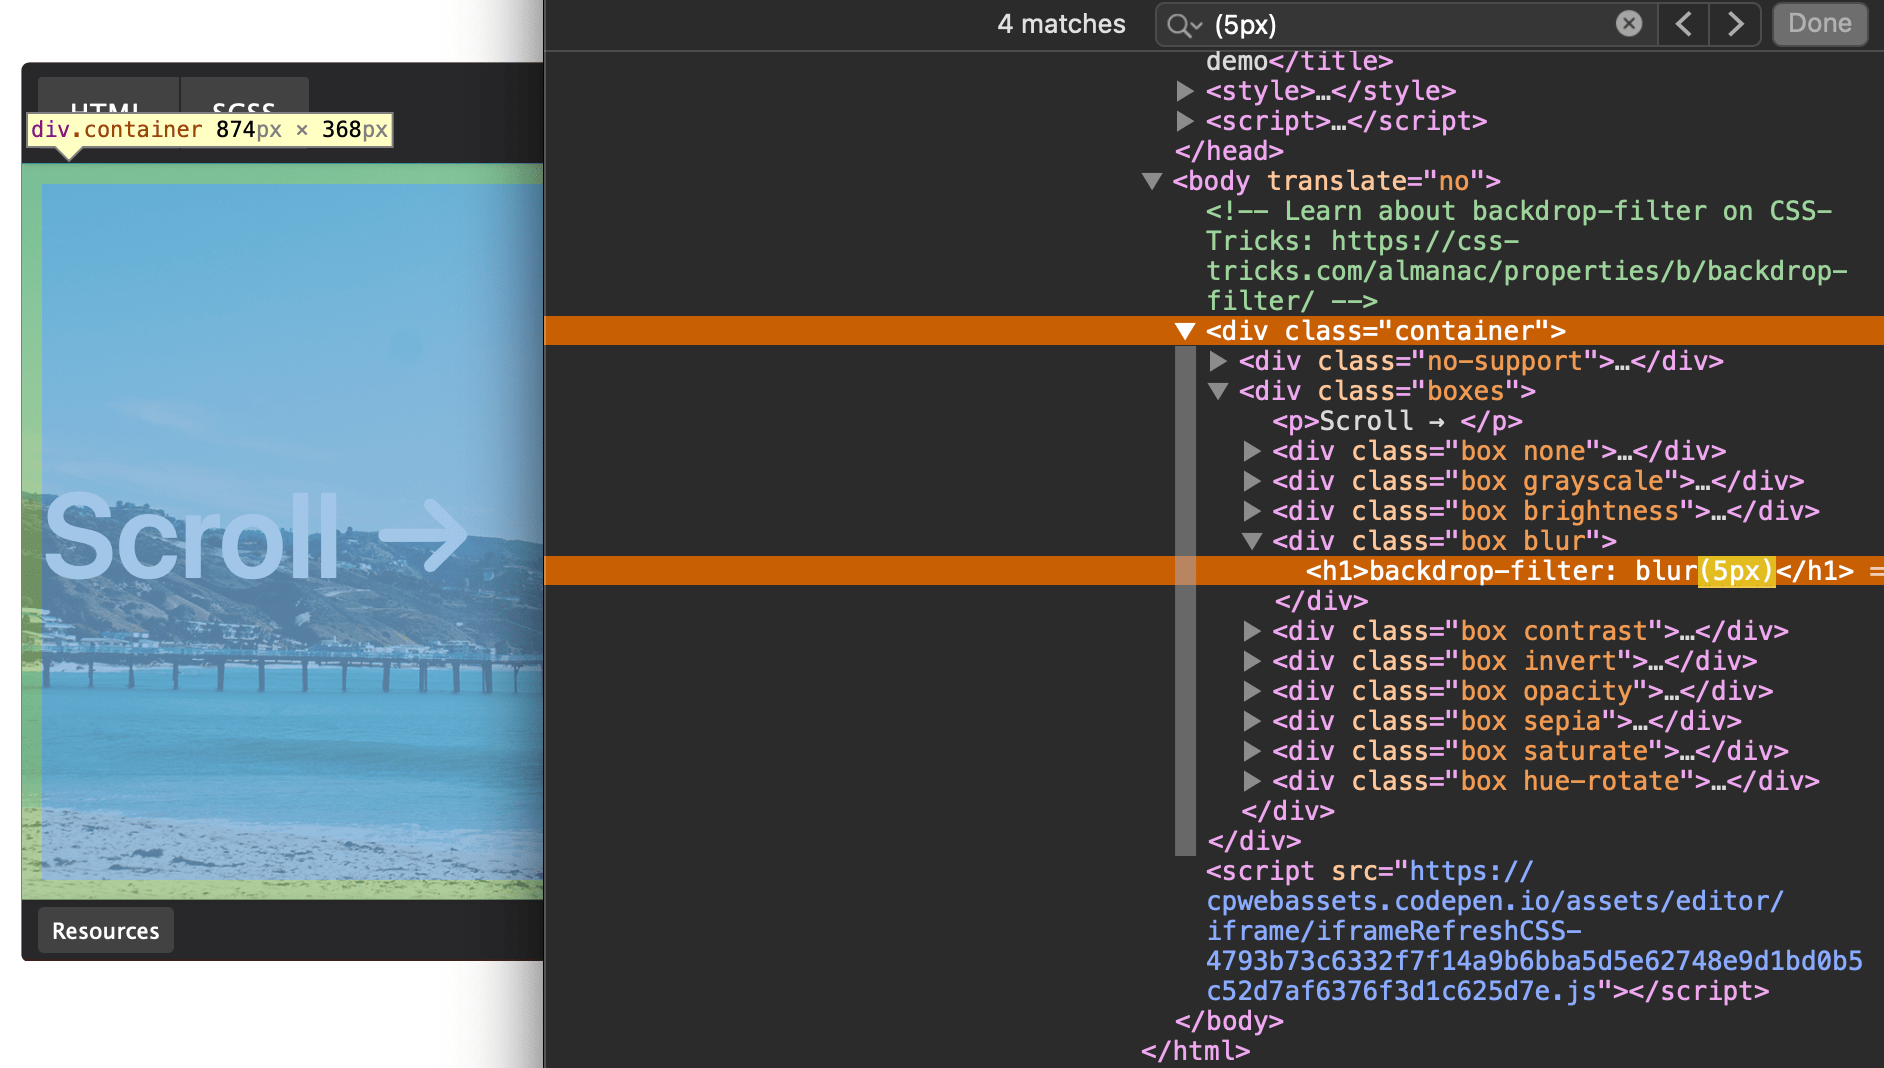 A screenshot of the embedded iframe with Safari's developer tools open to the right of it. A line of code is highlighted in the developer tools showing the heading 1 element that contains the content being pulled into the search engine results.